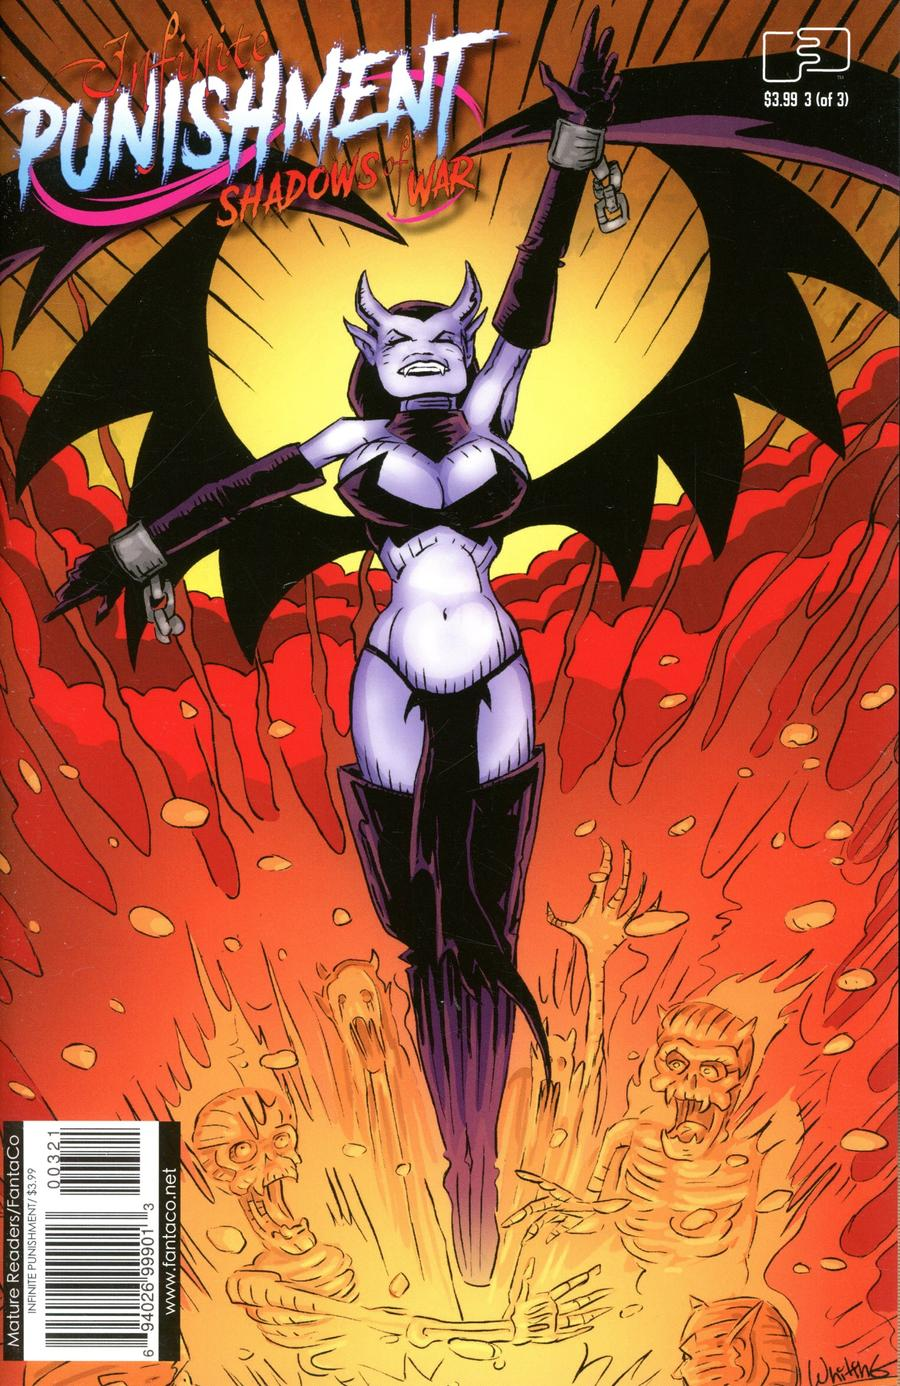 Infinite Punishment Shadows Of War #3 Cover B Variant Jim Whiting Cover